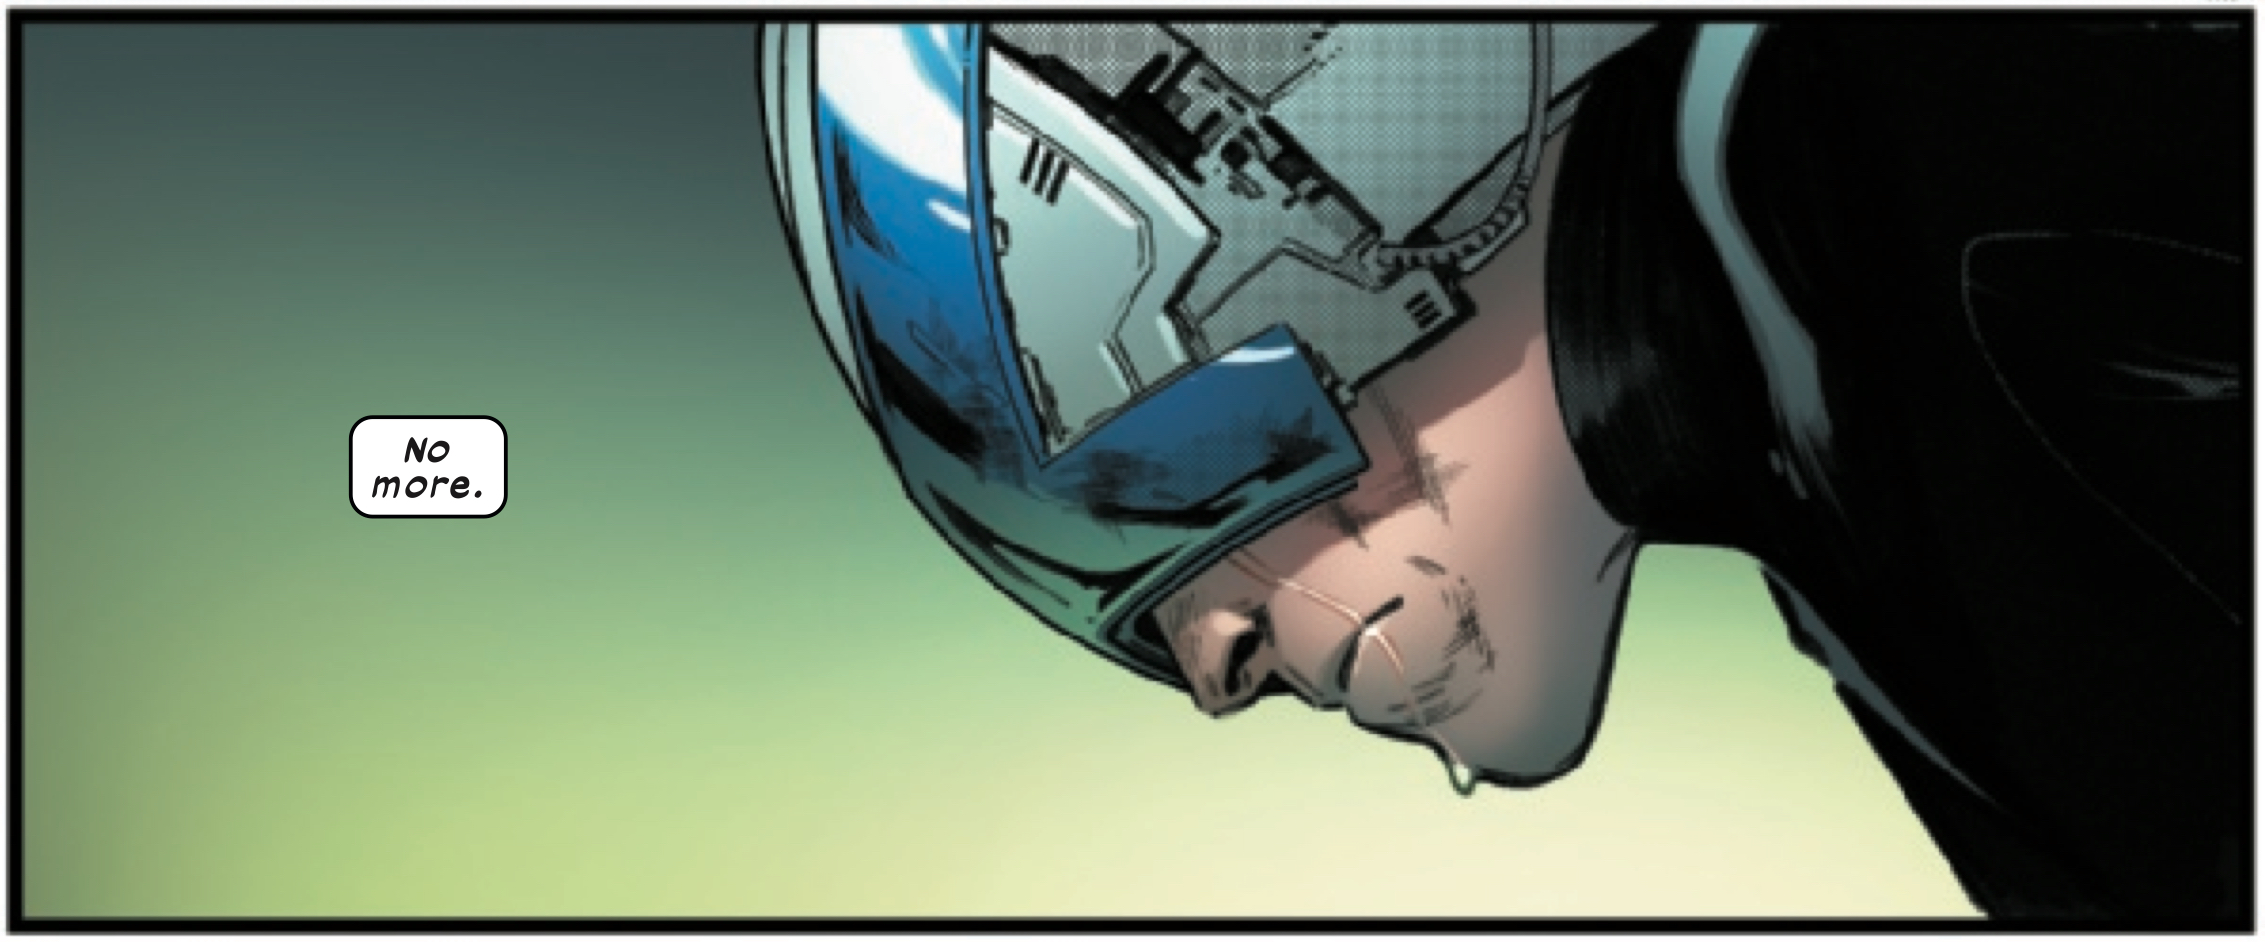 Professor X sheds a single tear for the X-Men in House of X #4, Marvel Comics (2019).